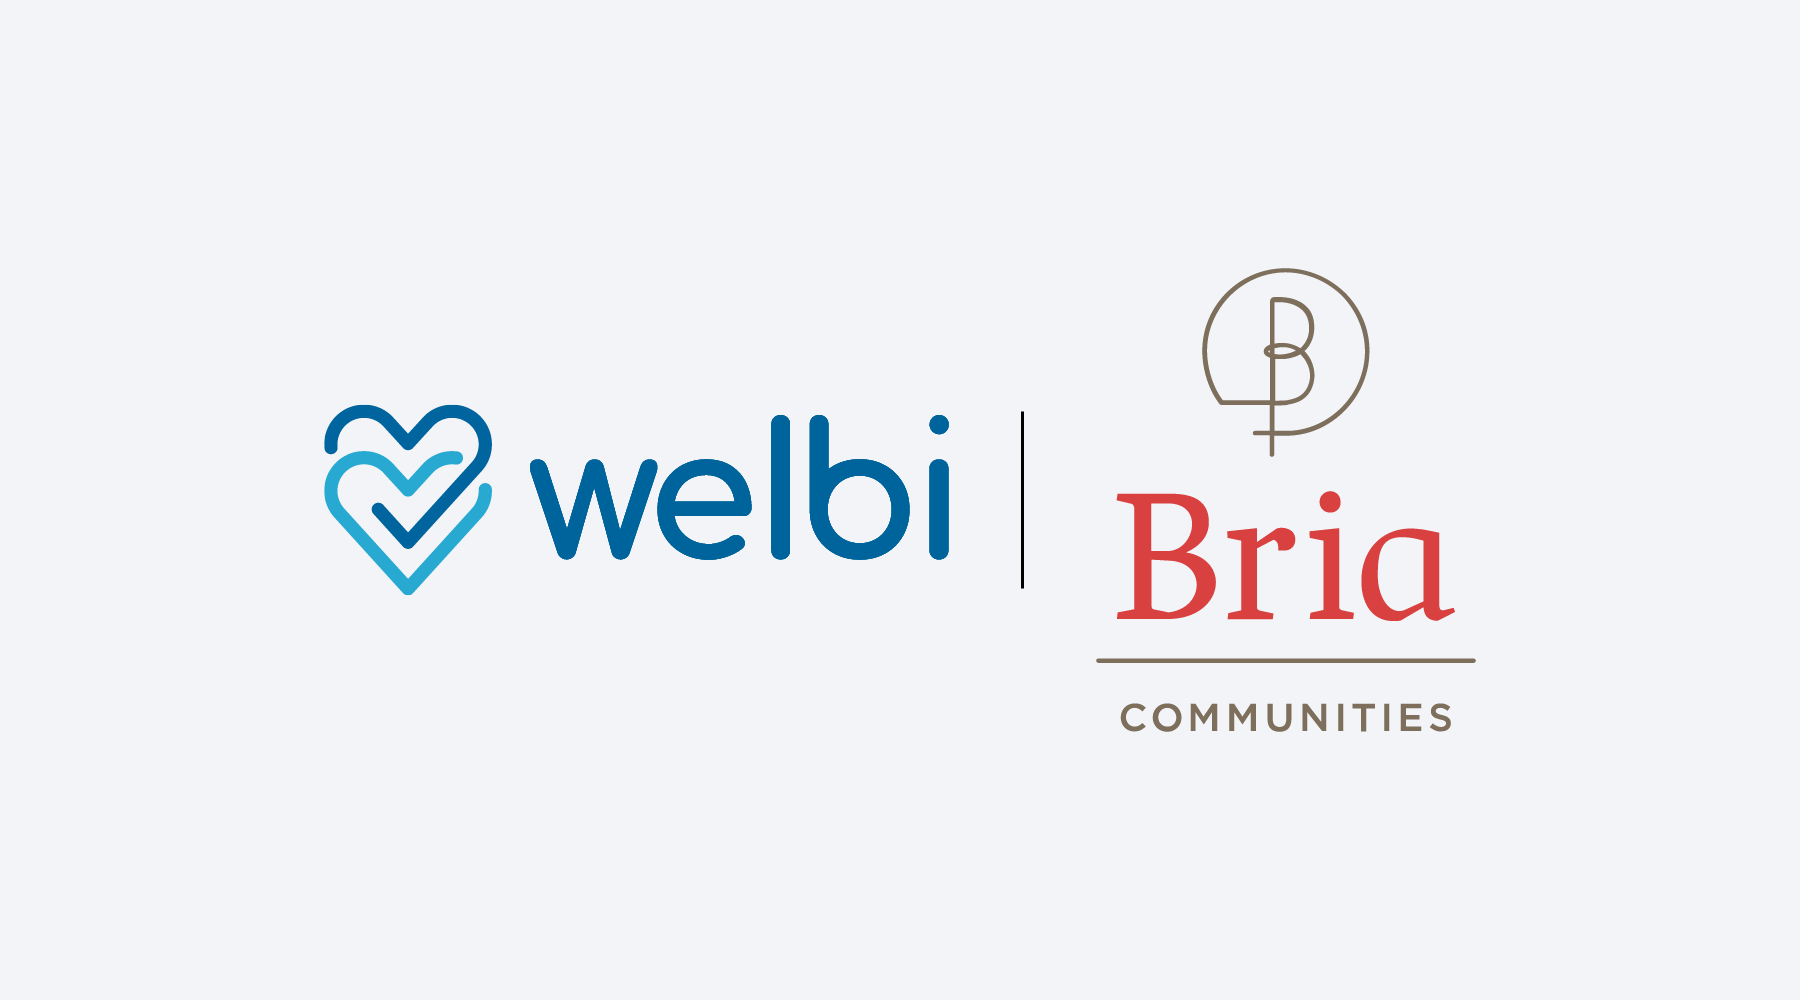 Bria Selects Welbi to Help Deliver Exceptional and Unique Life Experiences to Their Residents